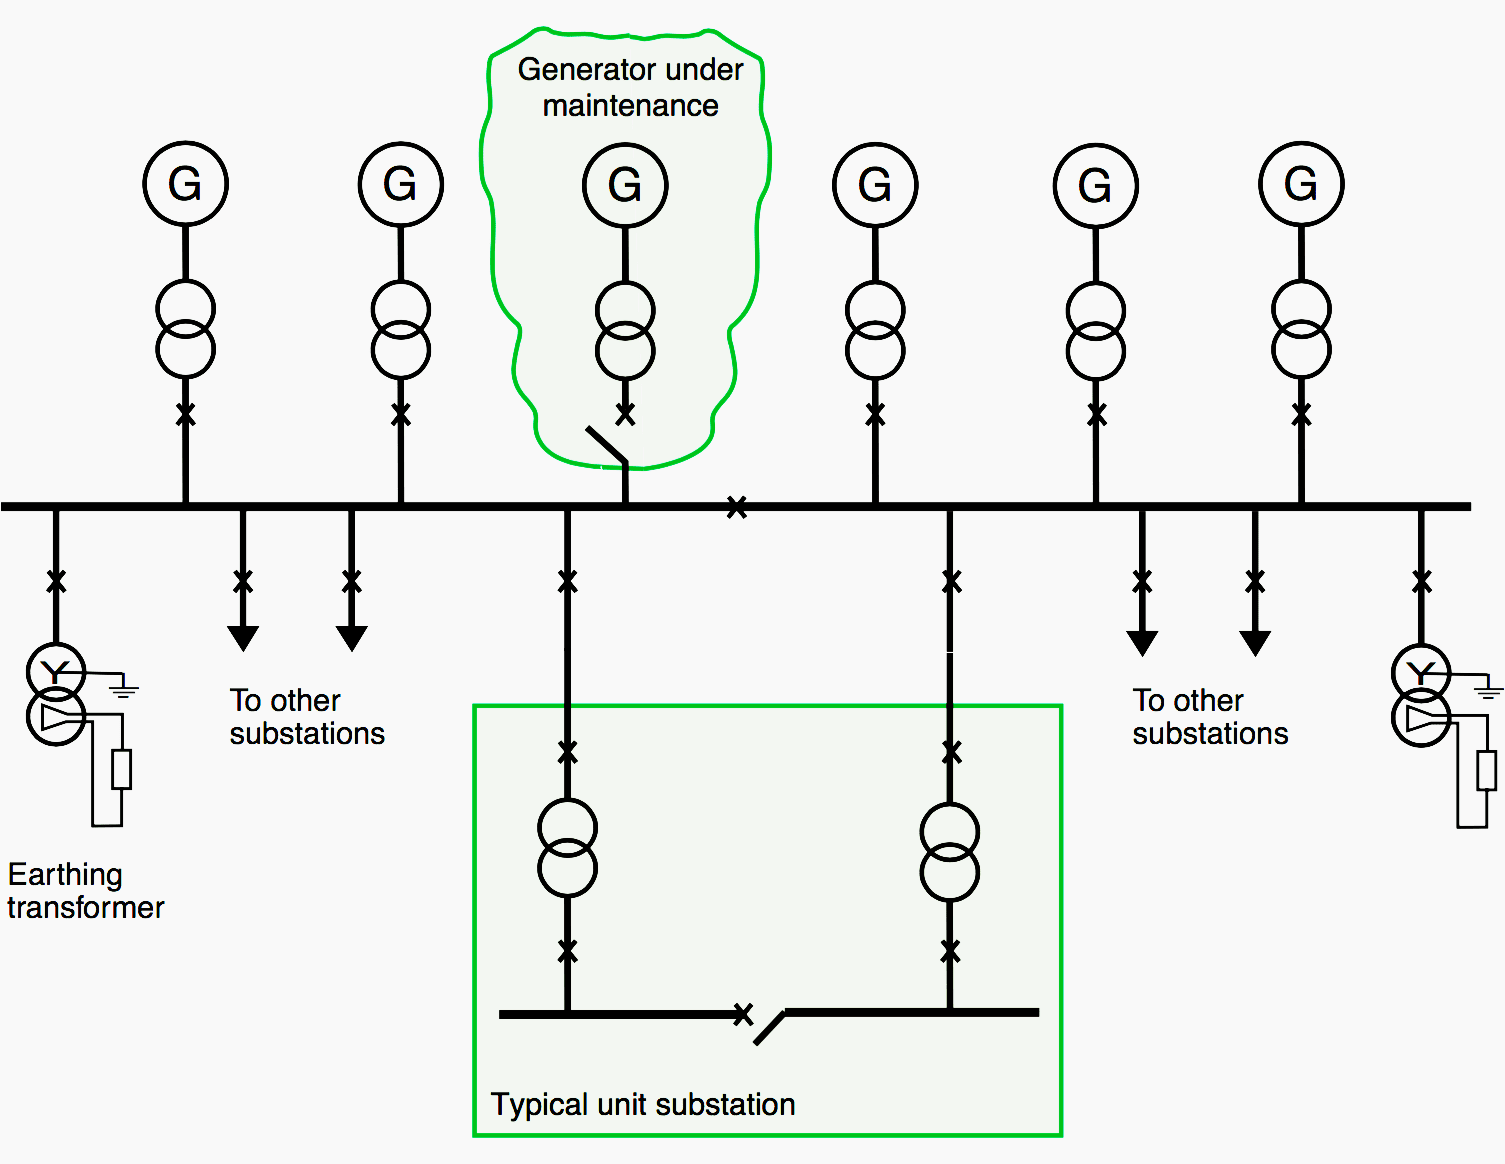 Typical Power Supply Schemes For Standby And Production